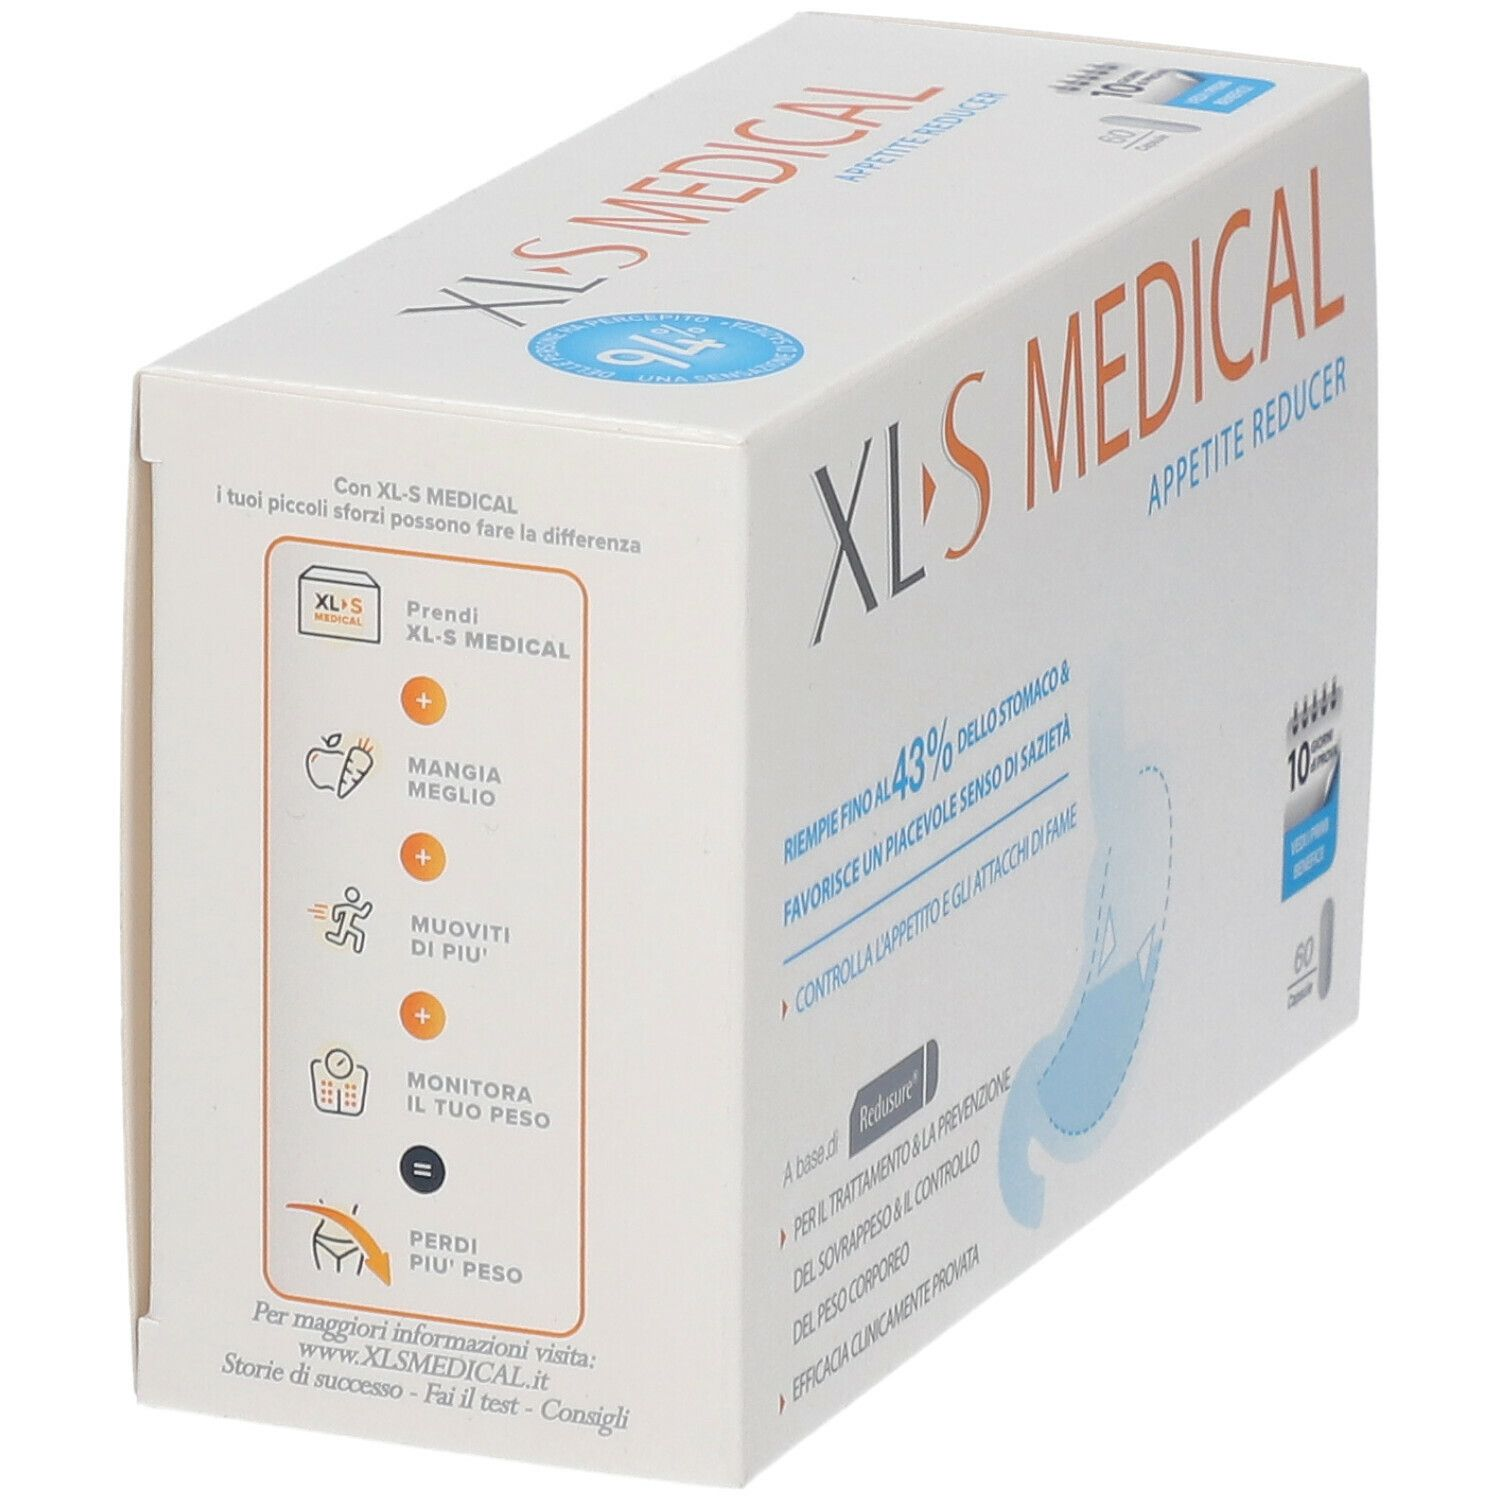 XL-S Medical Specialist Appetite Reducer